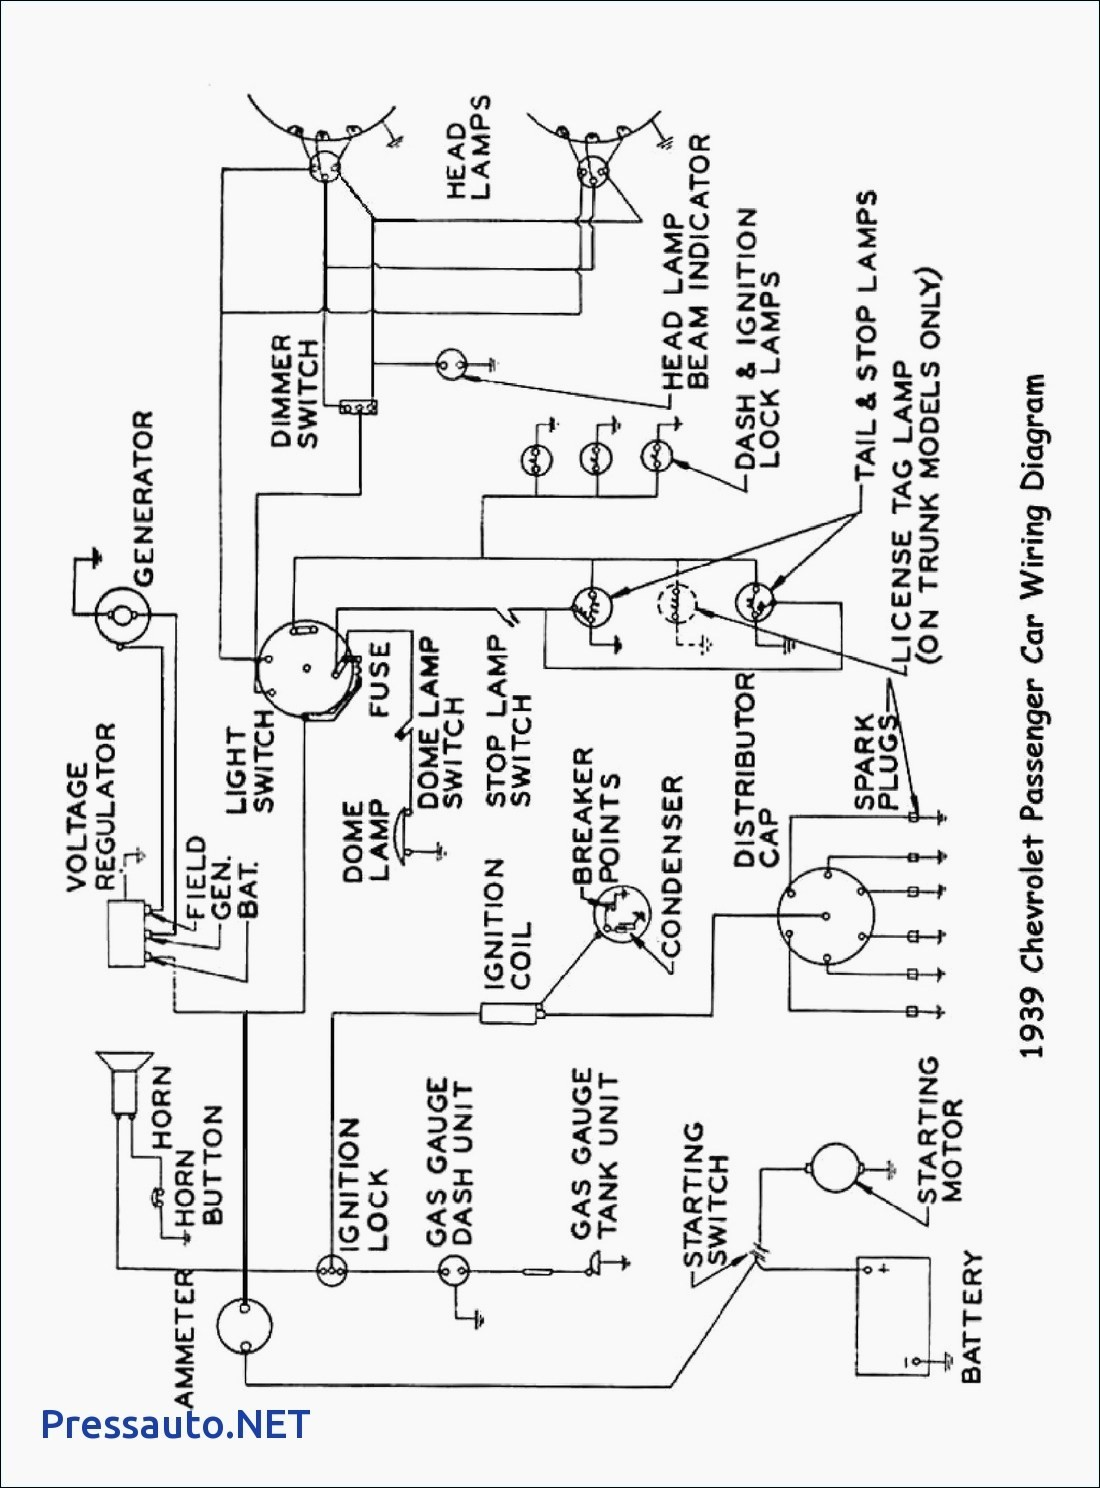 John Deere 1010 Wiring Schematic - Diagrams Catalogue on